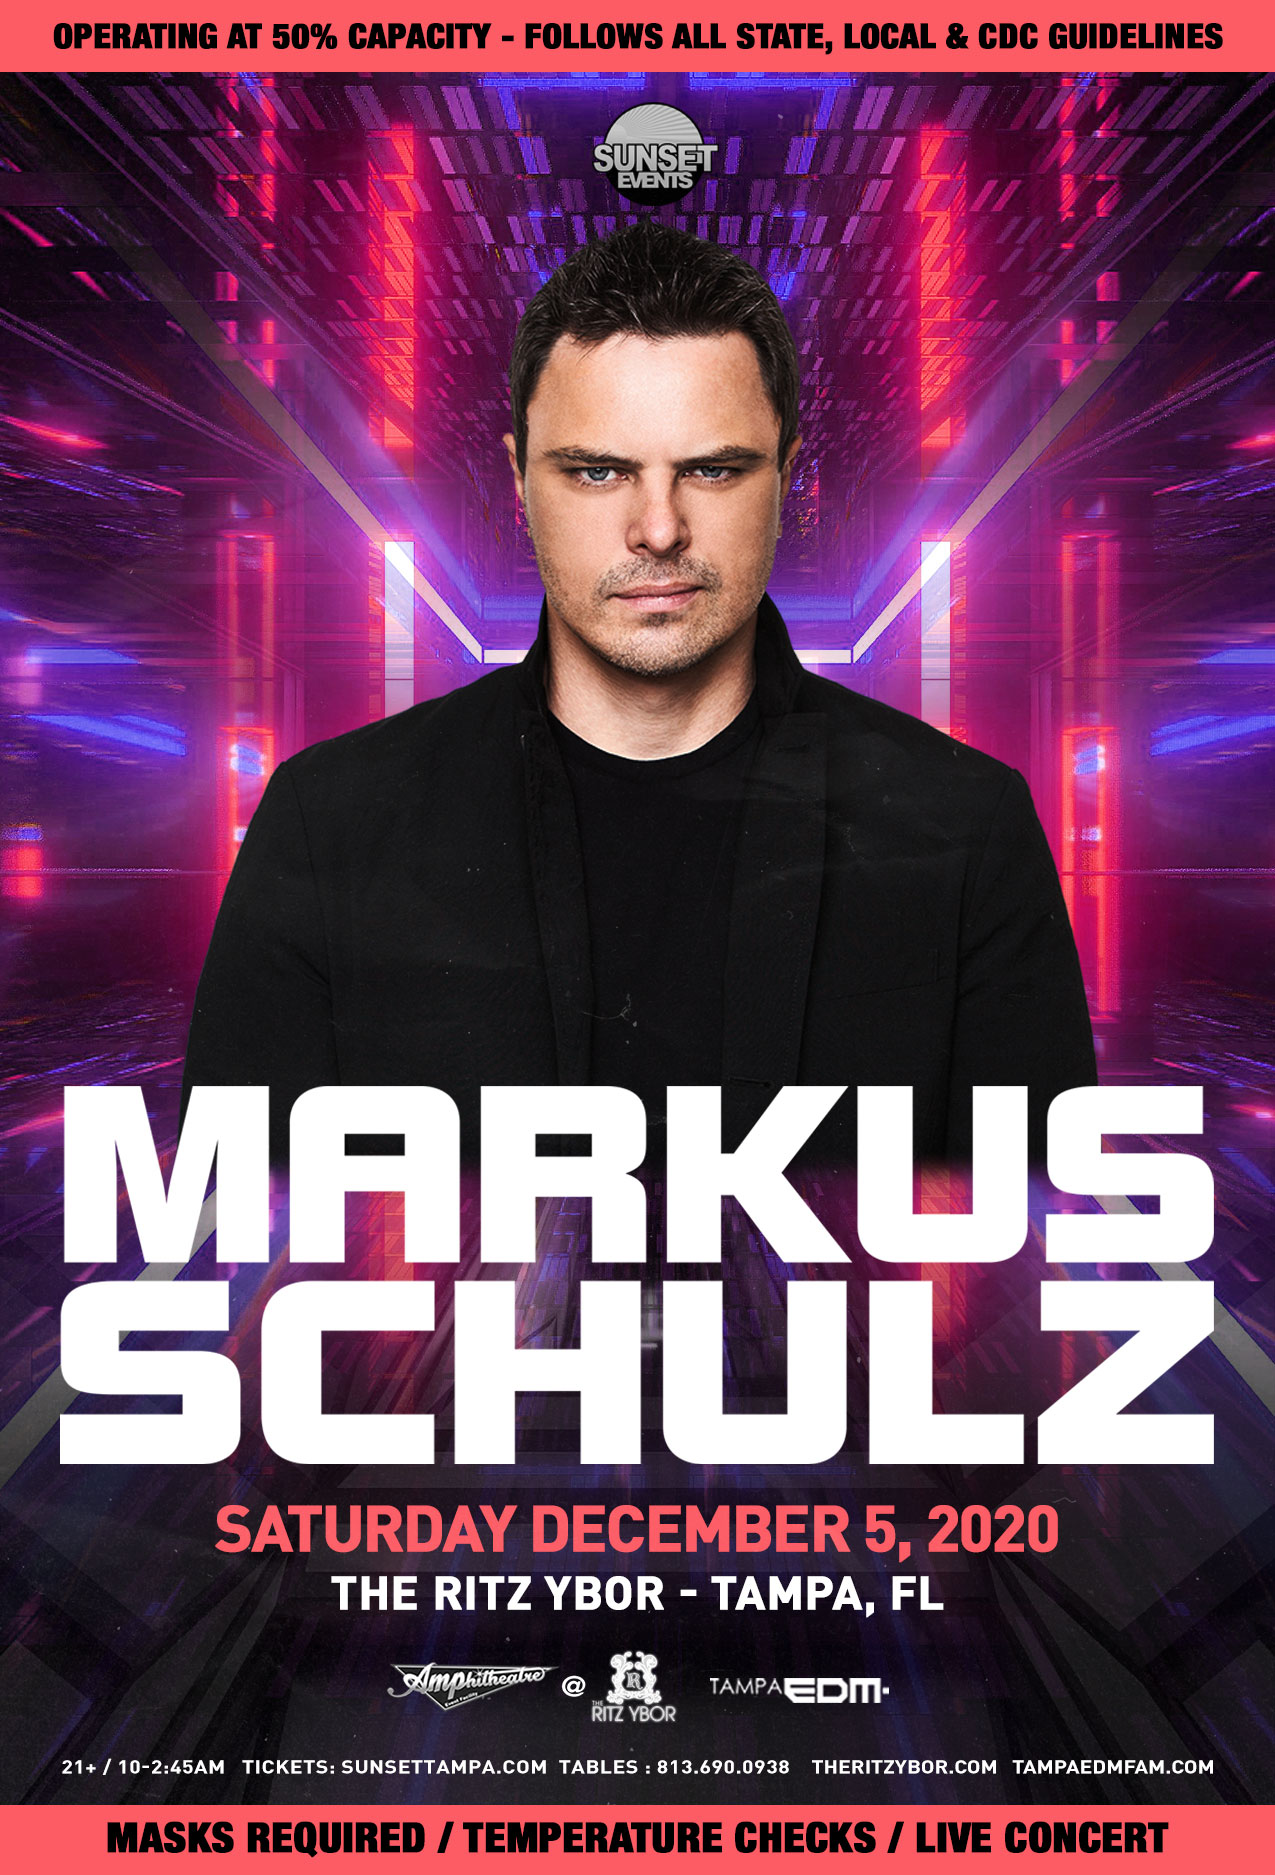 Markus Schulz for Sunset Saturdays at The RITZ Ybor – 12/5/2020